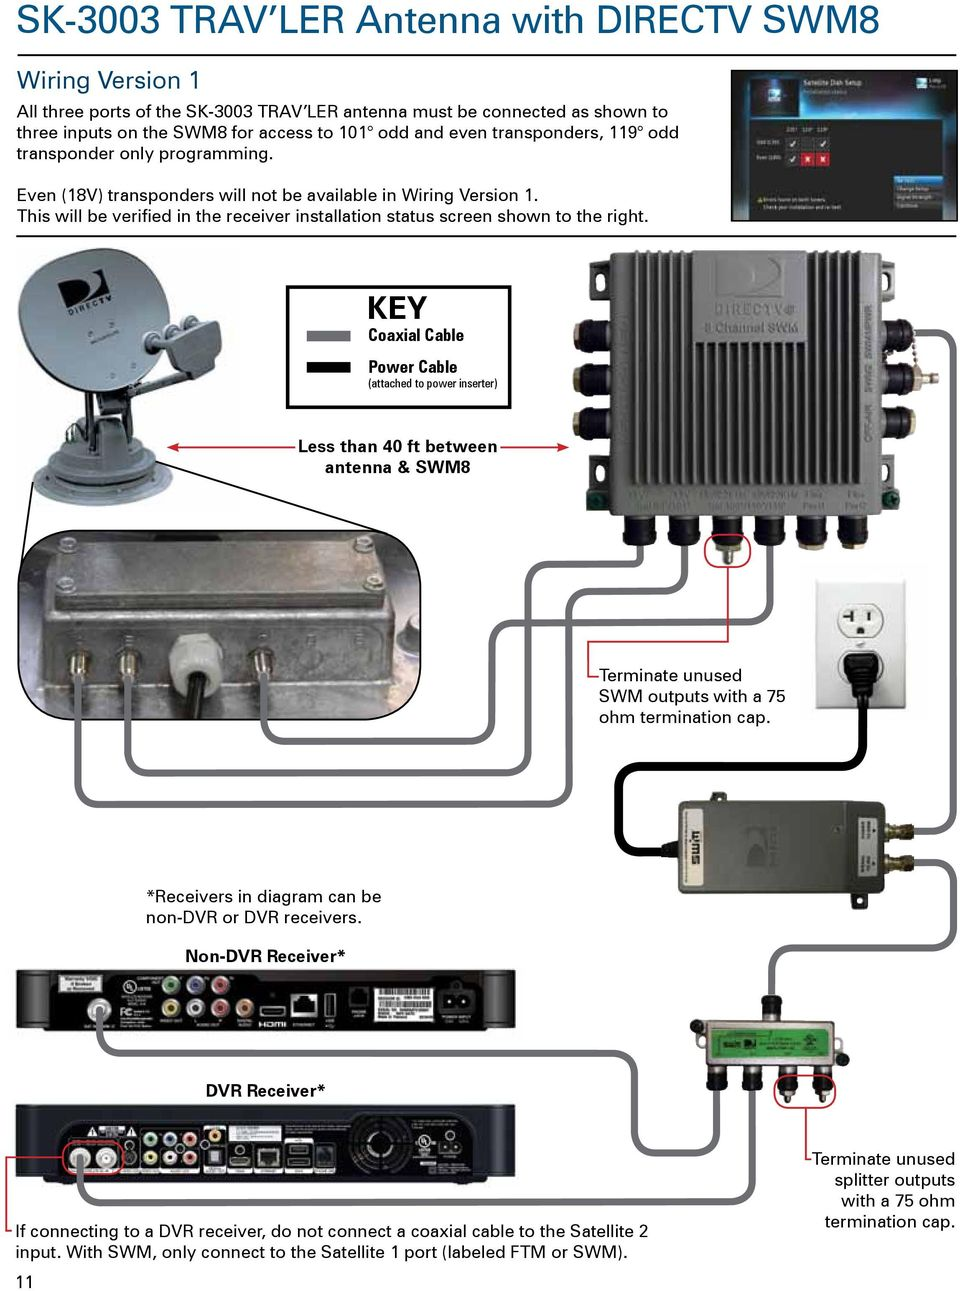 Wiring for directv whole house dvr diagram